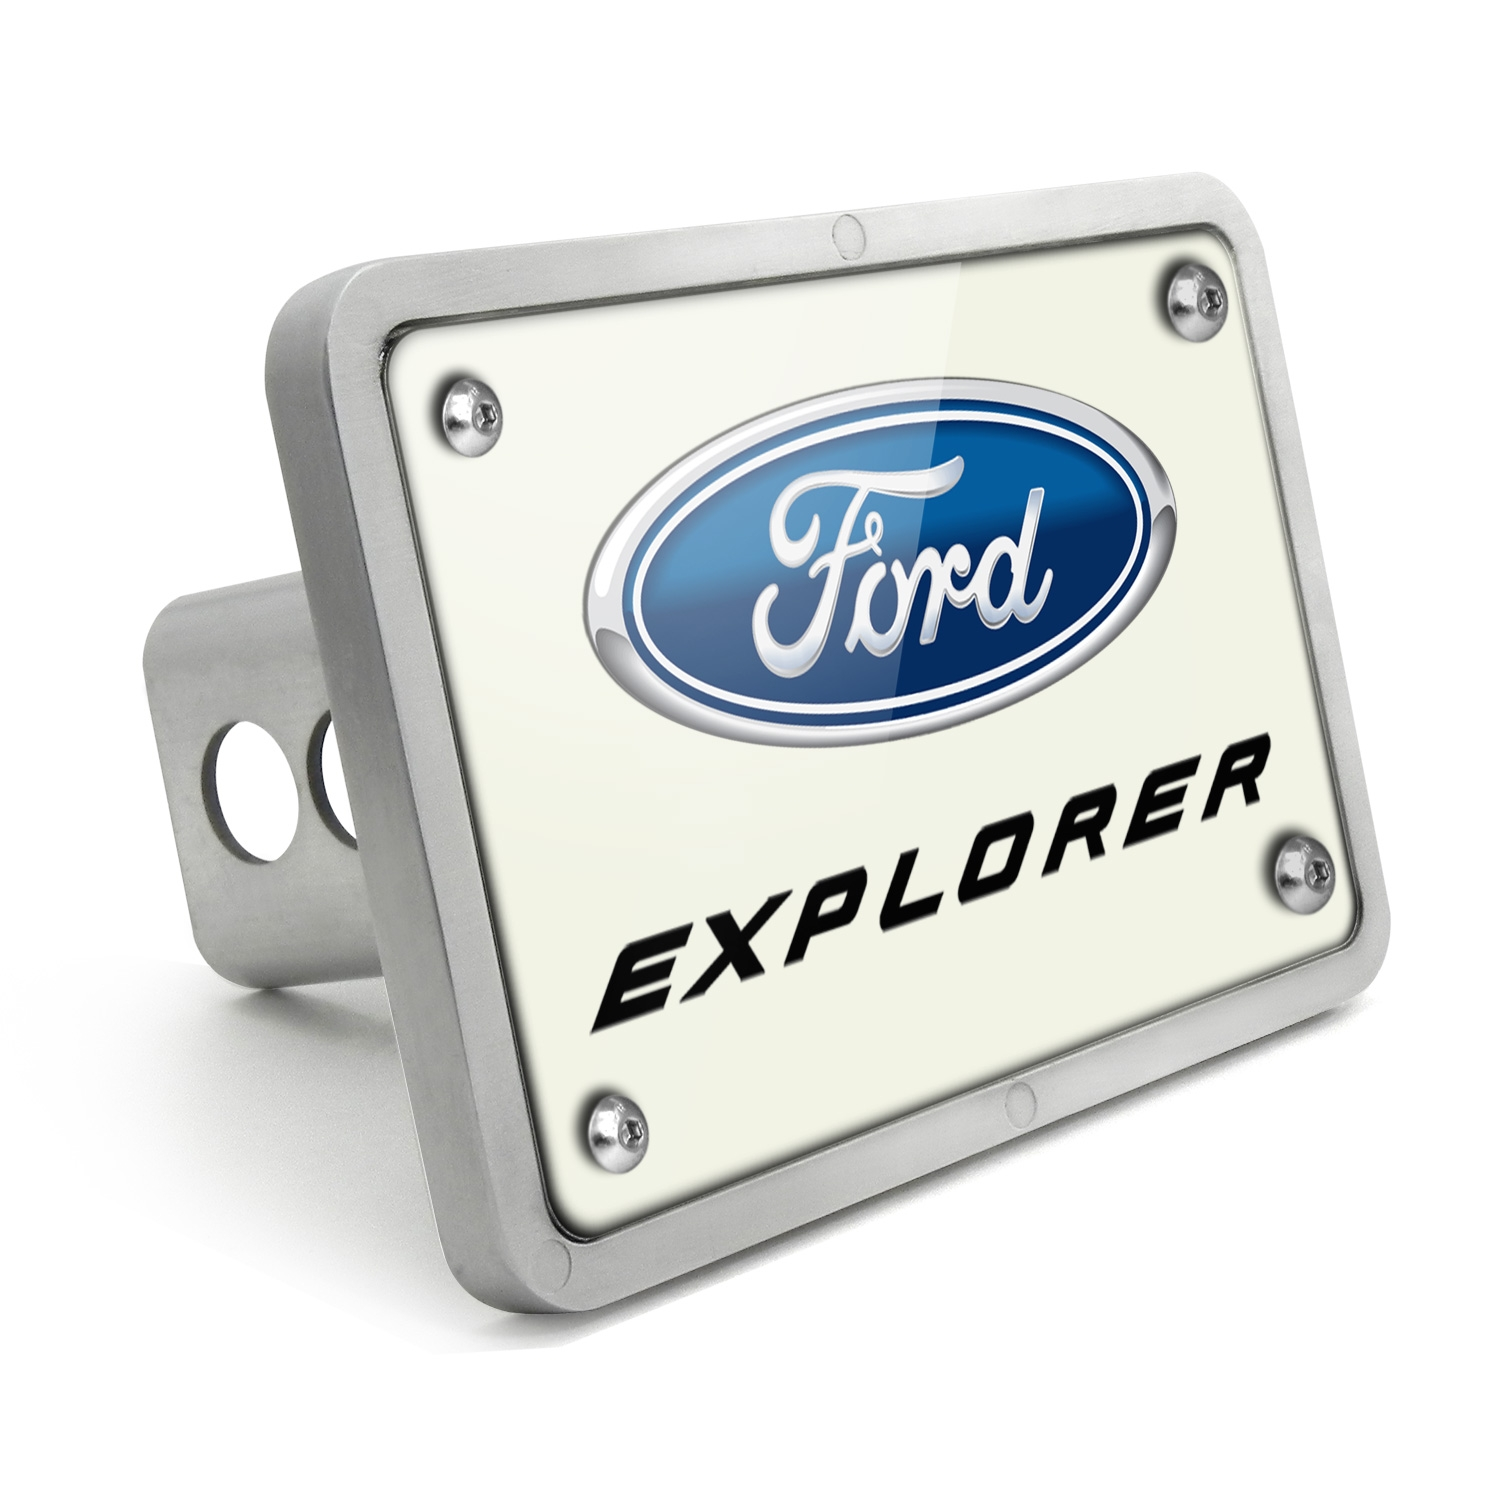 Ford Explorer UV Graphic White Plate Billet Aluminum 2 inch Tow Hitch Cover